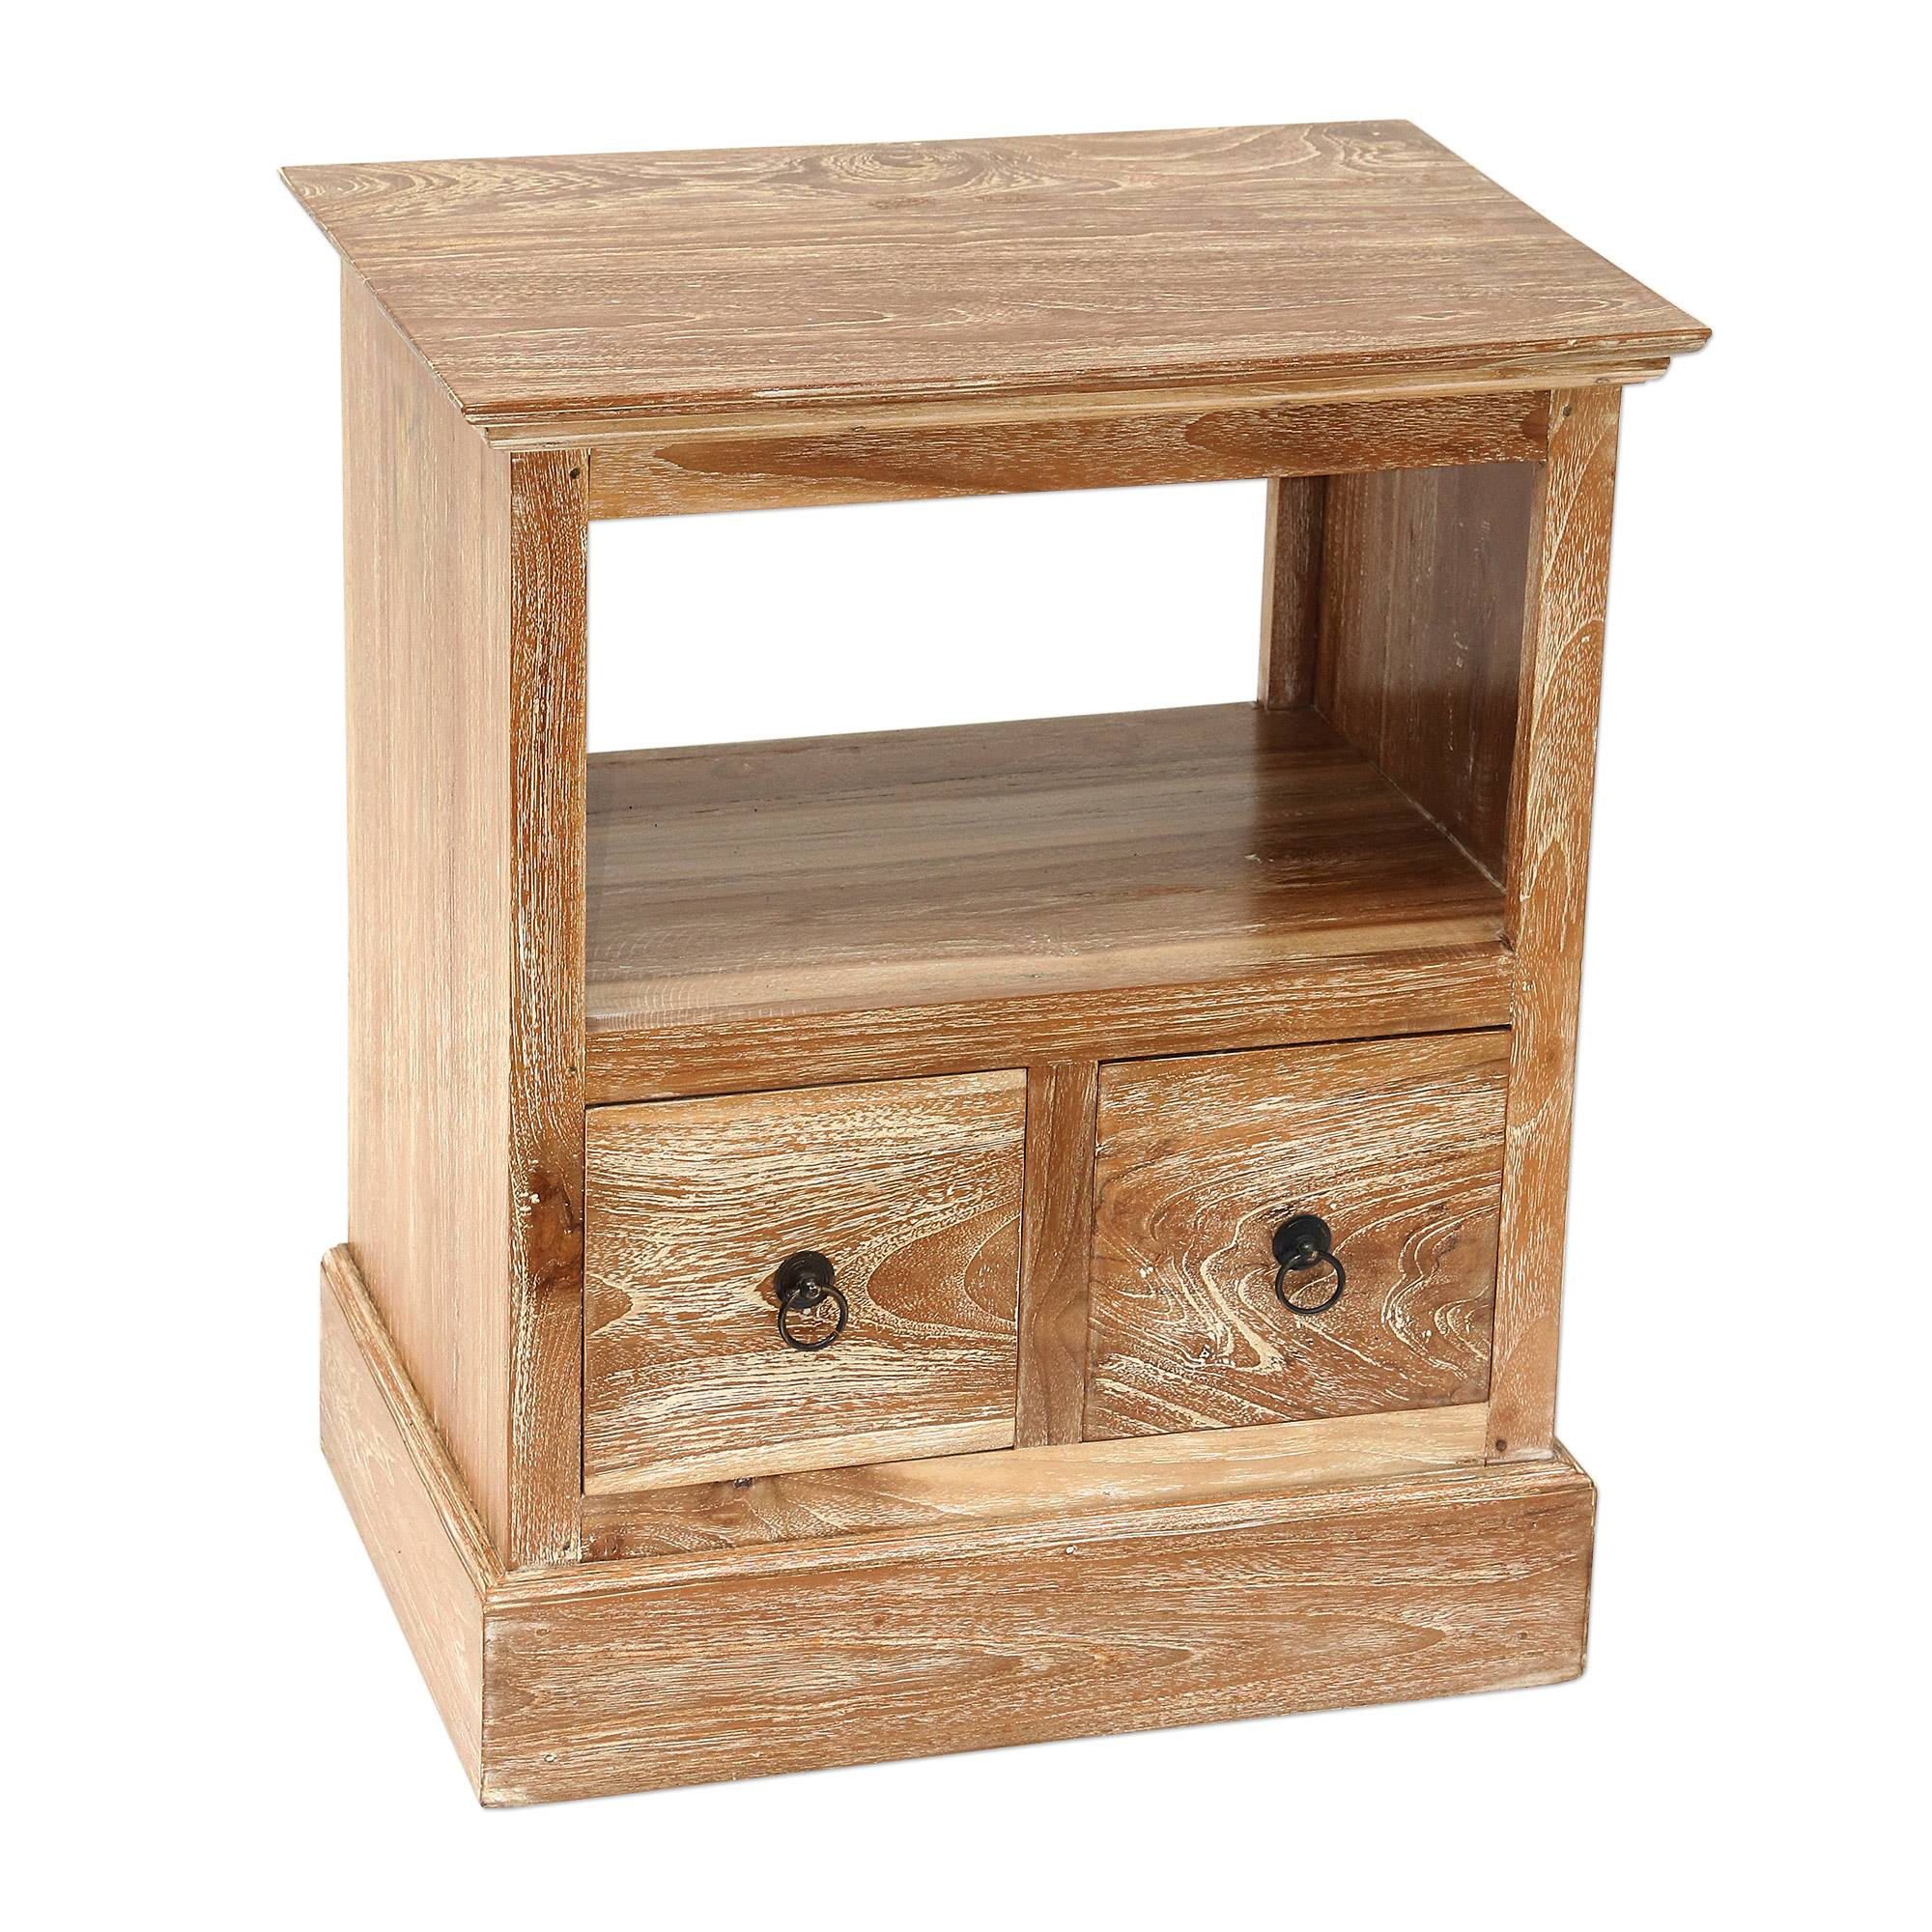 Handmade Carved Natural Teakwood Nightstand With Drawers Tabanan Classic